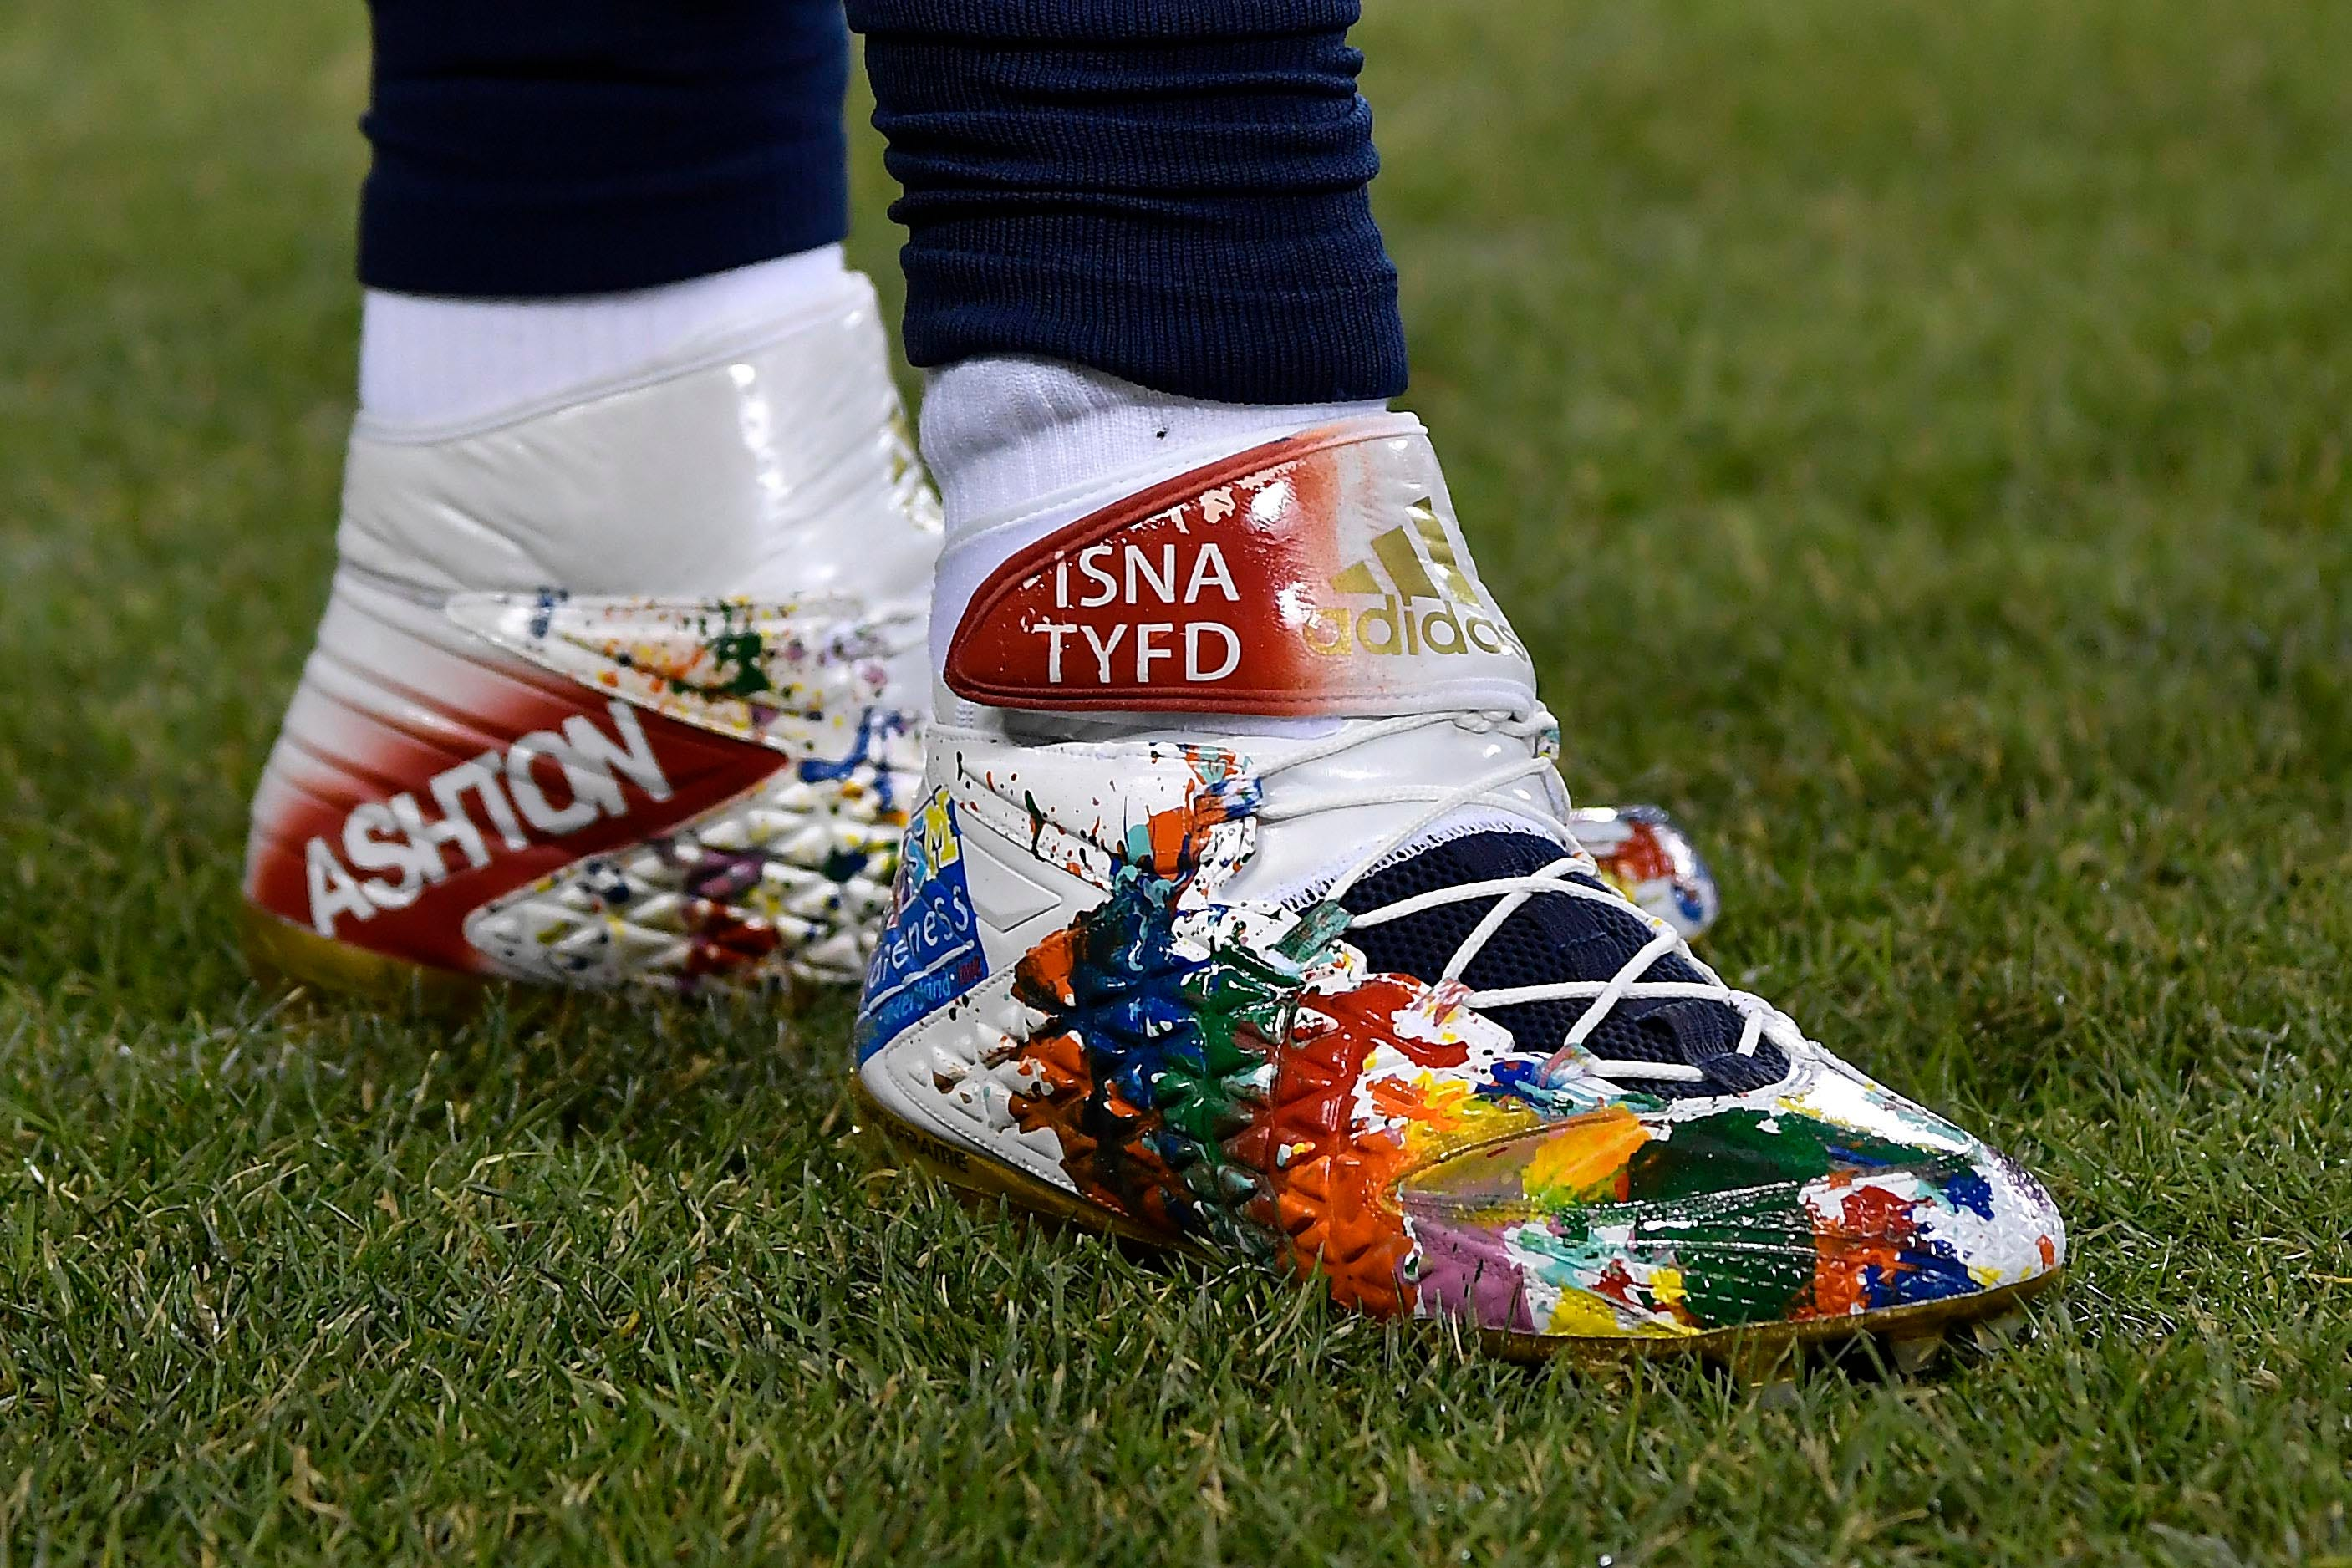 A general view of the shoes worn by Los Angeles Rams defensive end Michael Brockers before the game against the Chicago Bears at Soldier Field.